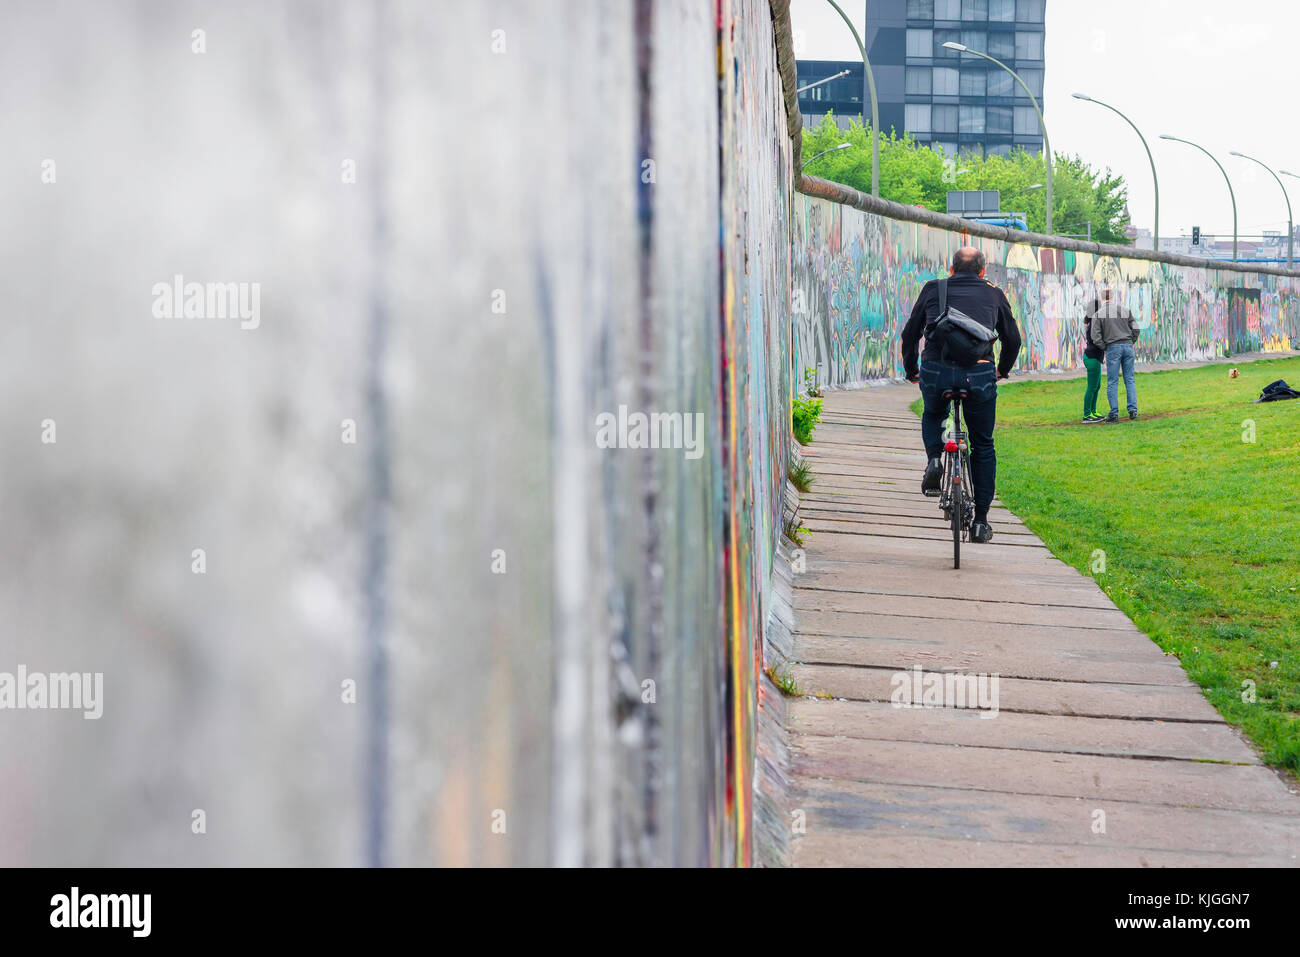 Berlin wall, section of the Berlin Wall in Friedrichshain that divided the city between east and west in the post - Stock Image